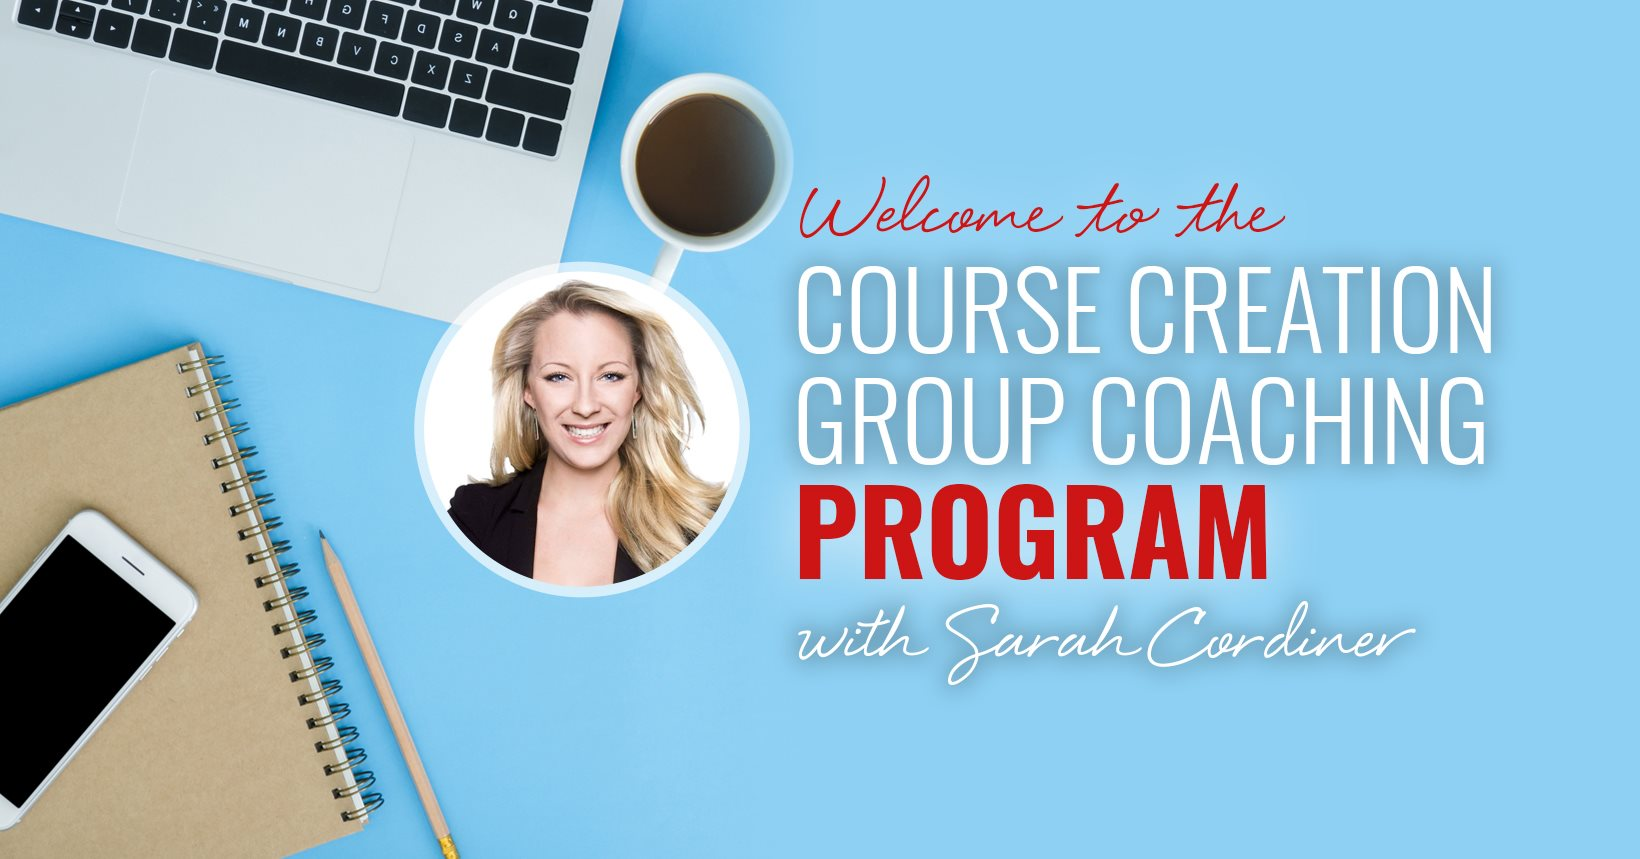 Course creation group coaching program sarah cordiner